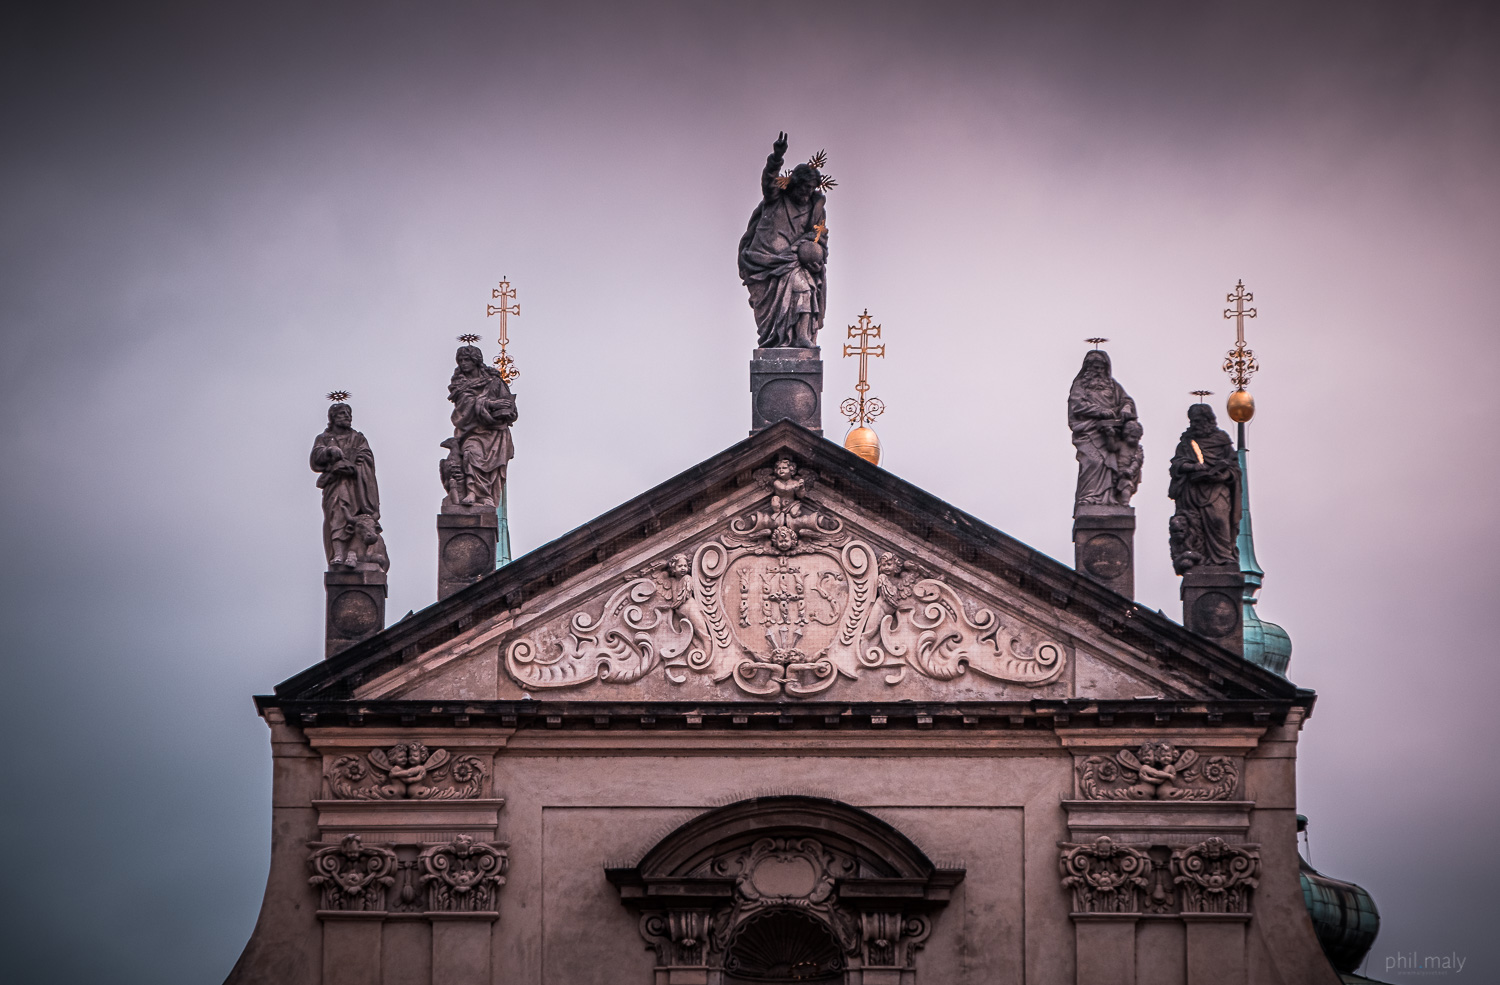 The statues of the saints on the roof of a church